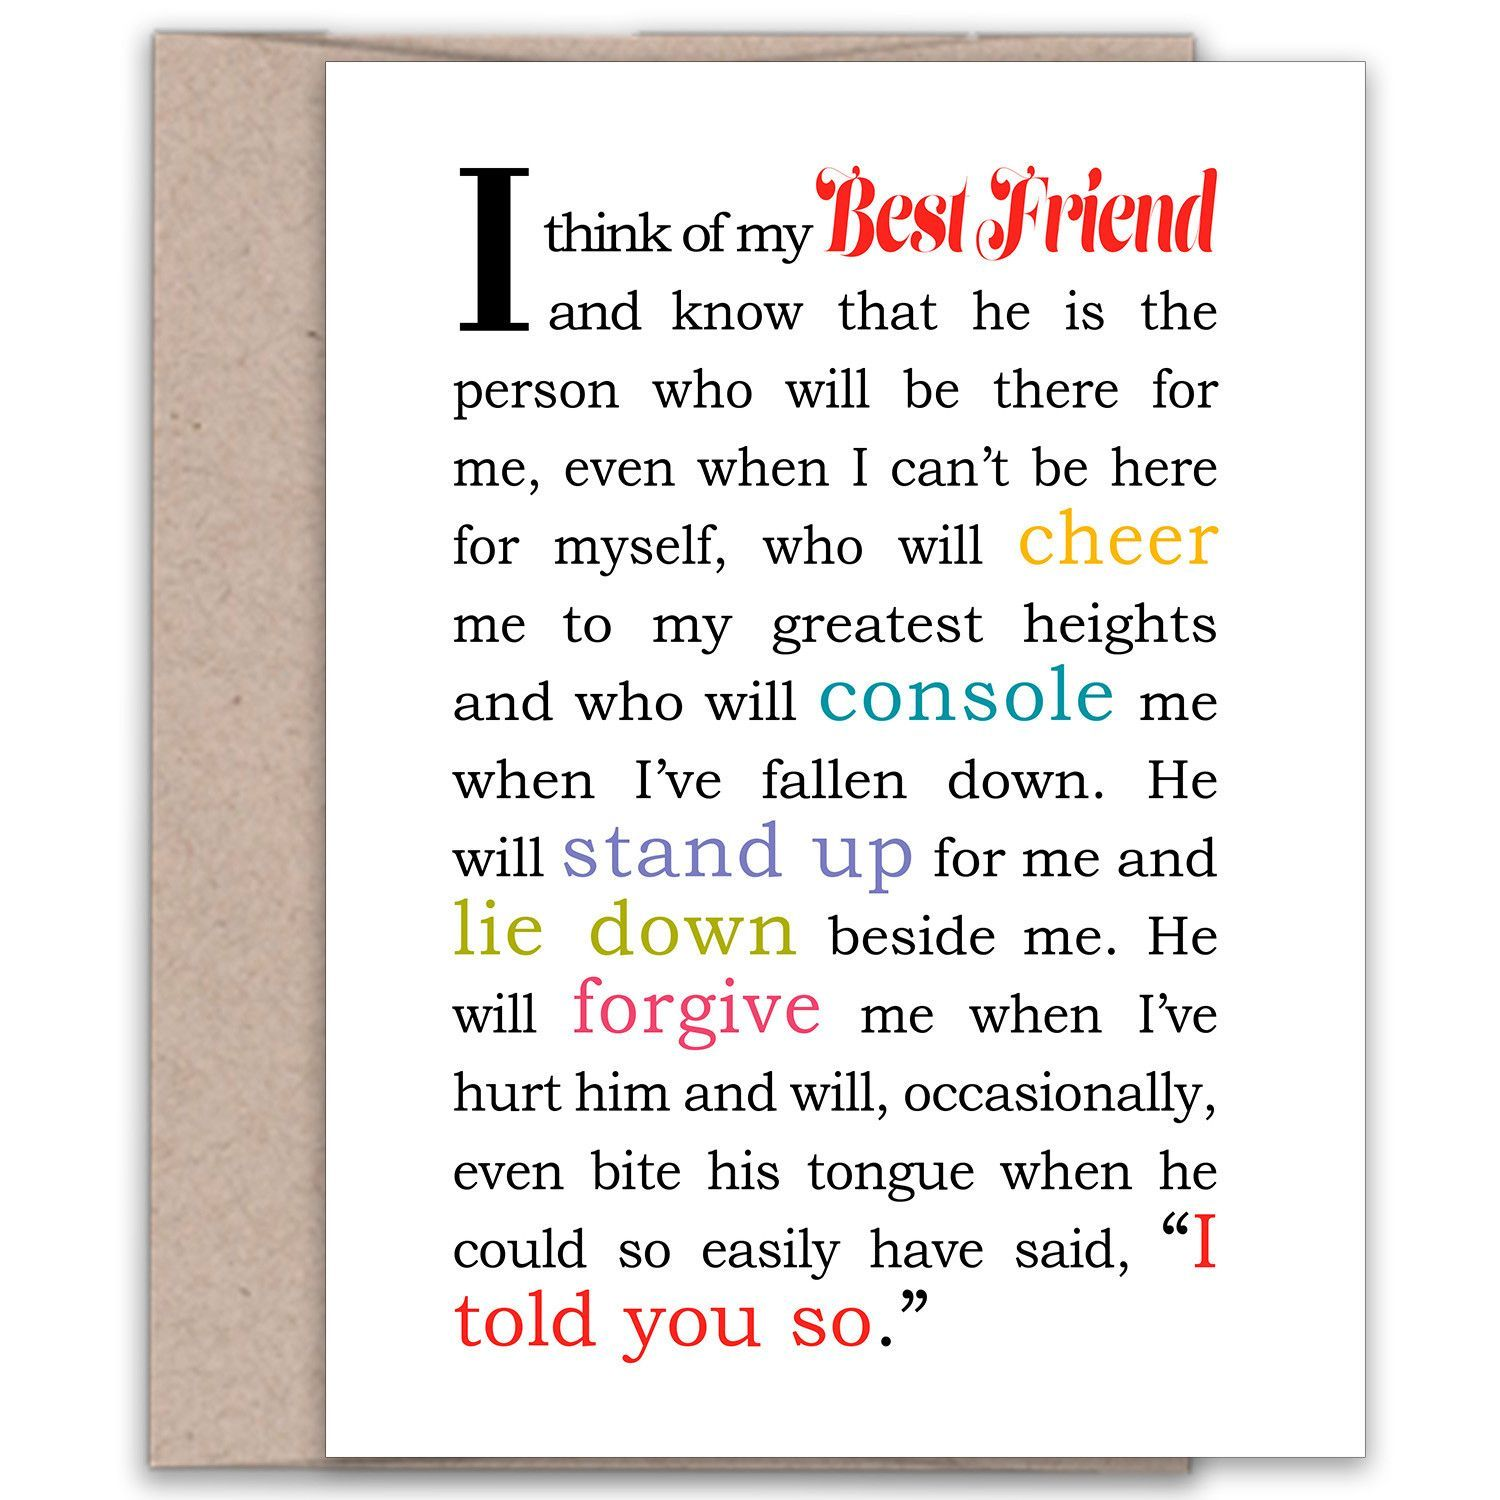 I Think of My Best Friend Male Card for Best Friend